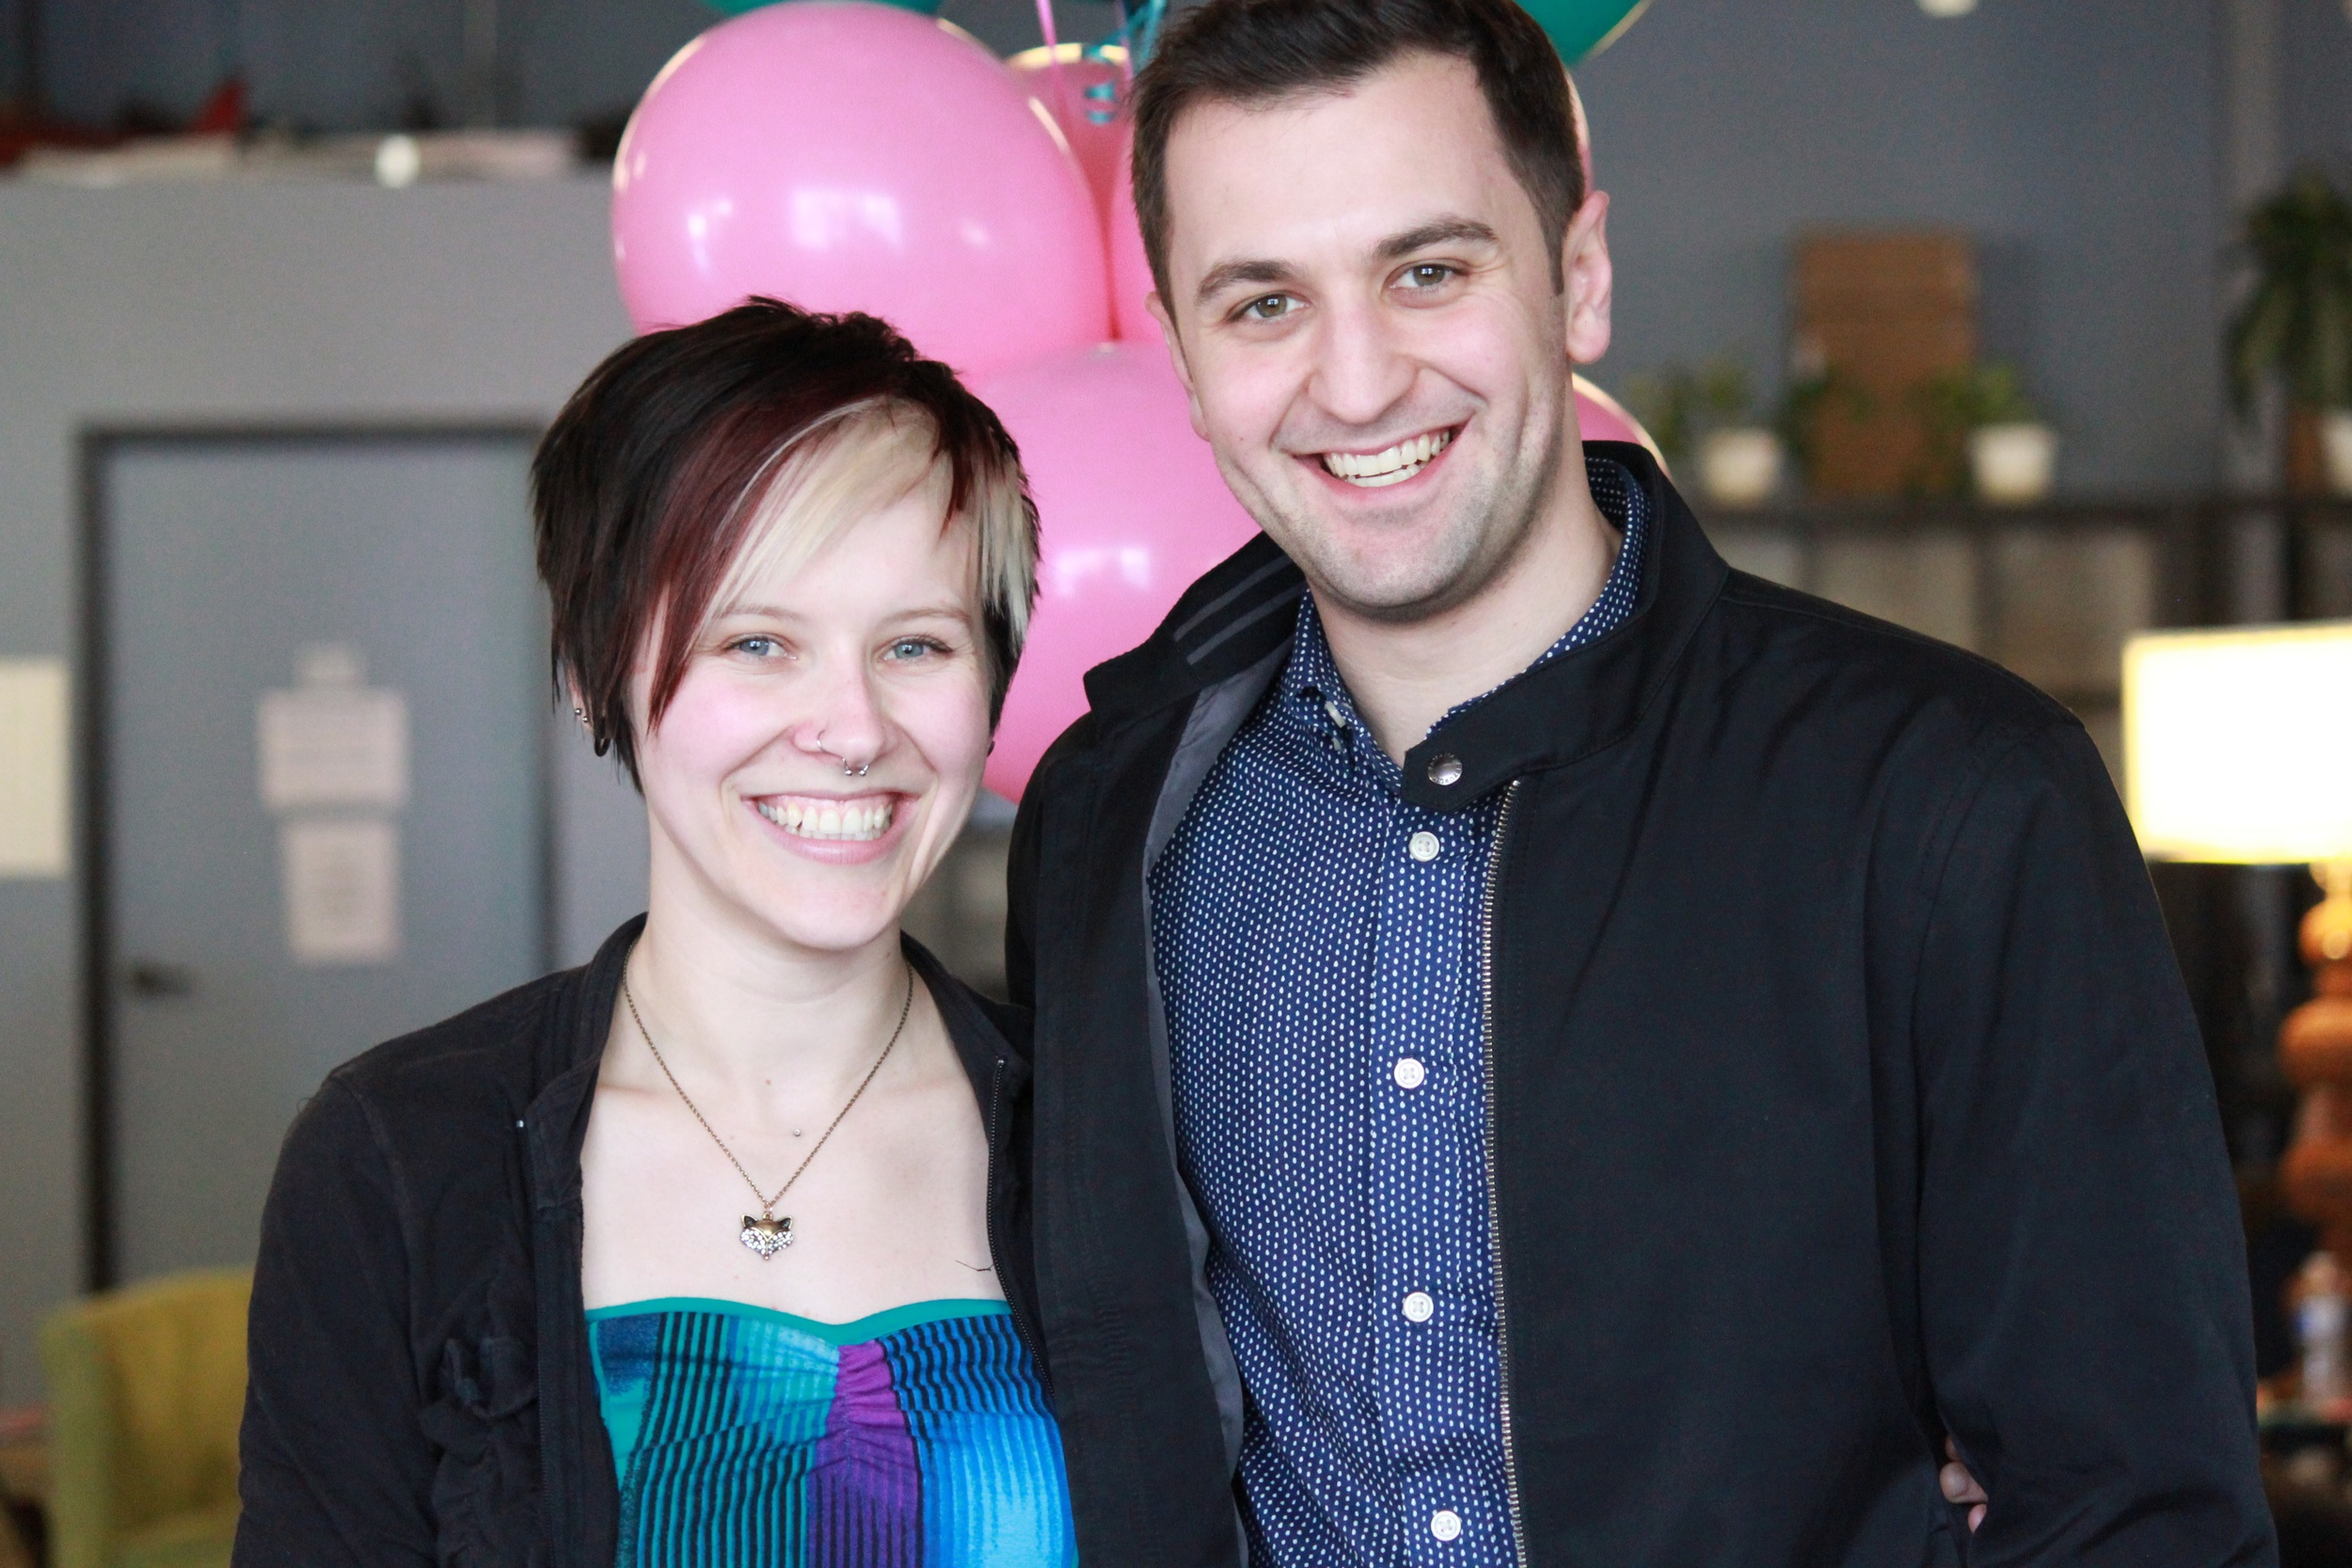 LA Community Manager Stacey Speer and Lyft Co-Founder John Zimmer.